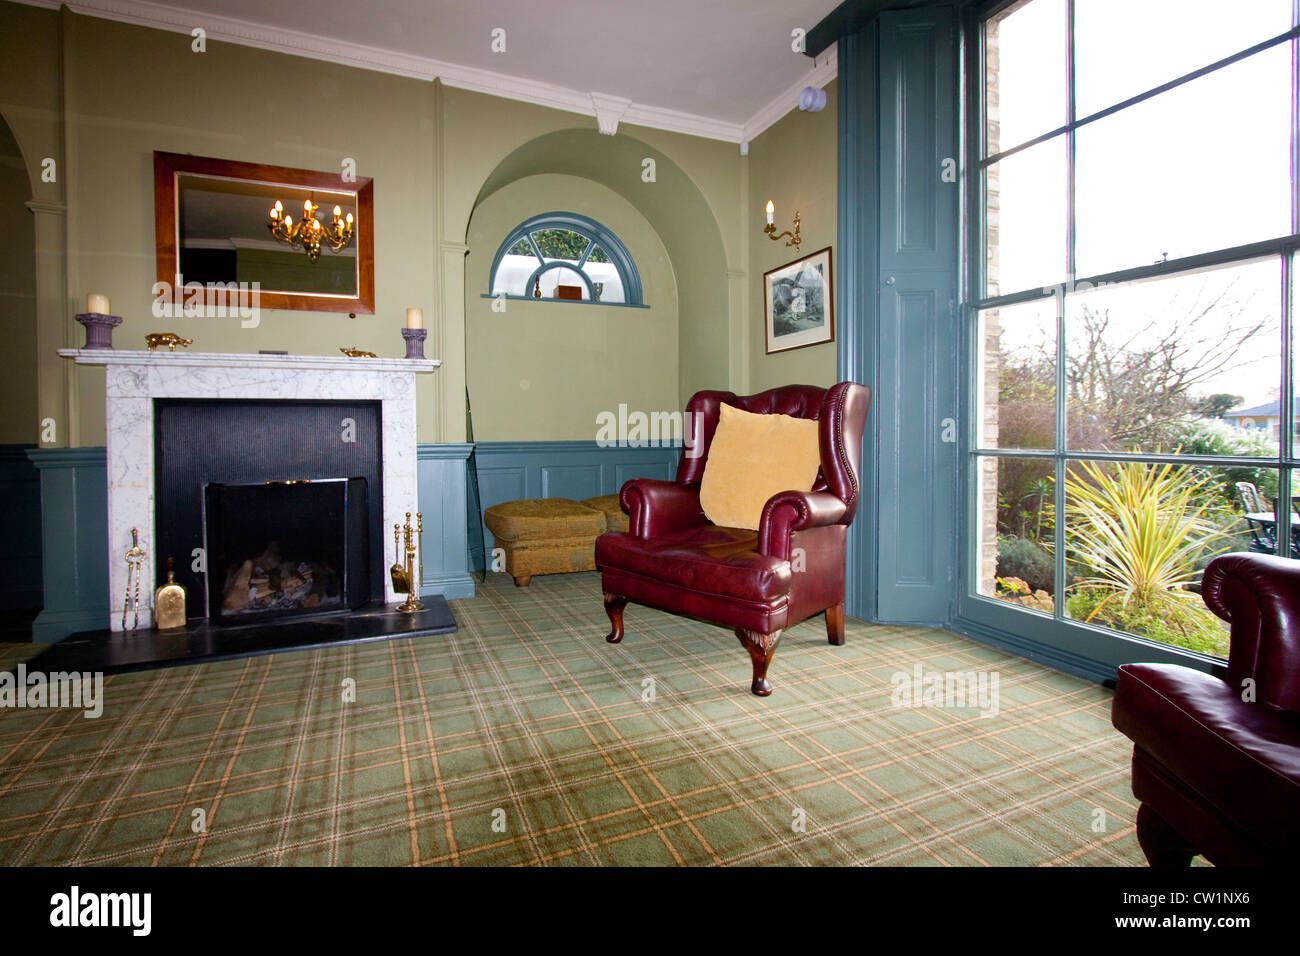 georgian style living room with fireplace and old leather armchair